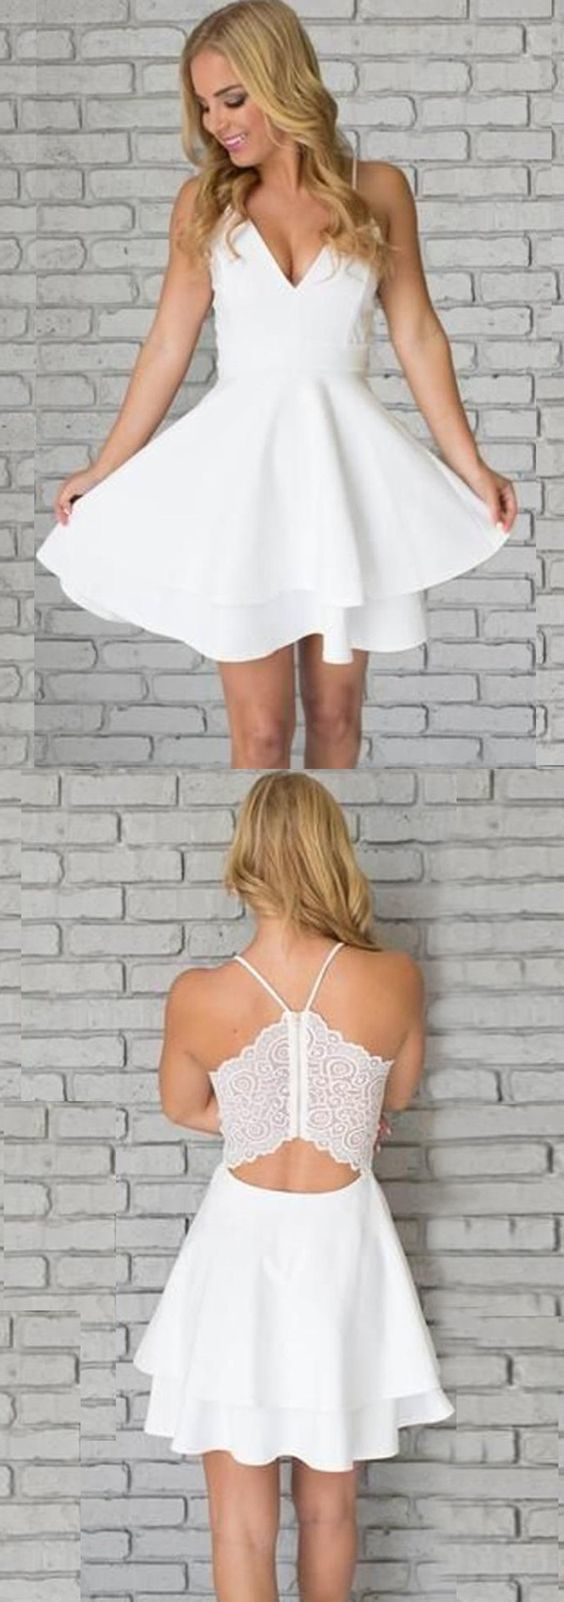 Aline spaghetti straps short white satin homecoming dress with lace